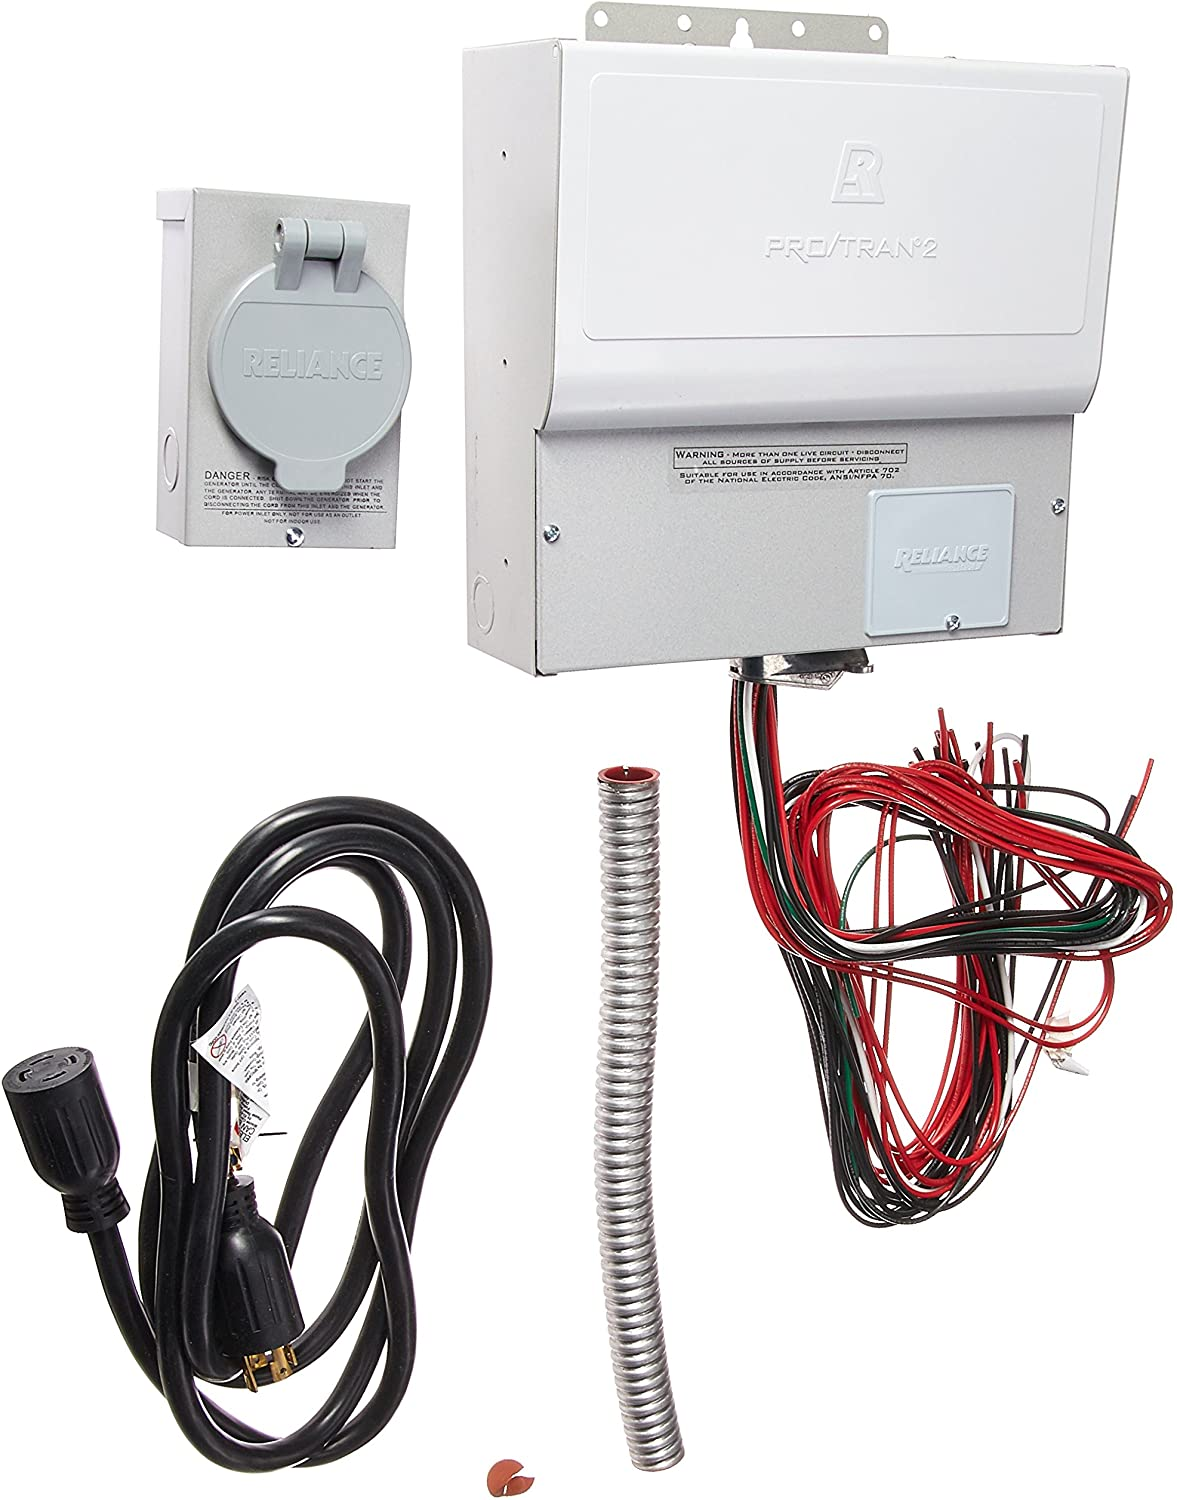 Reliance Controls Panel//Link Transfer Switch TRB1210DR